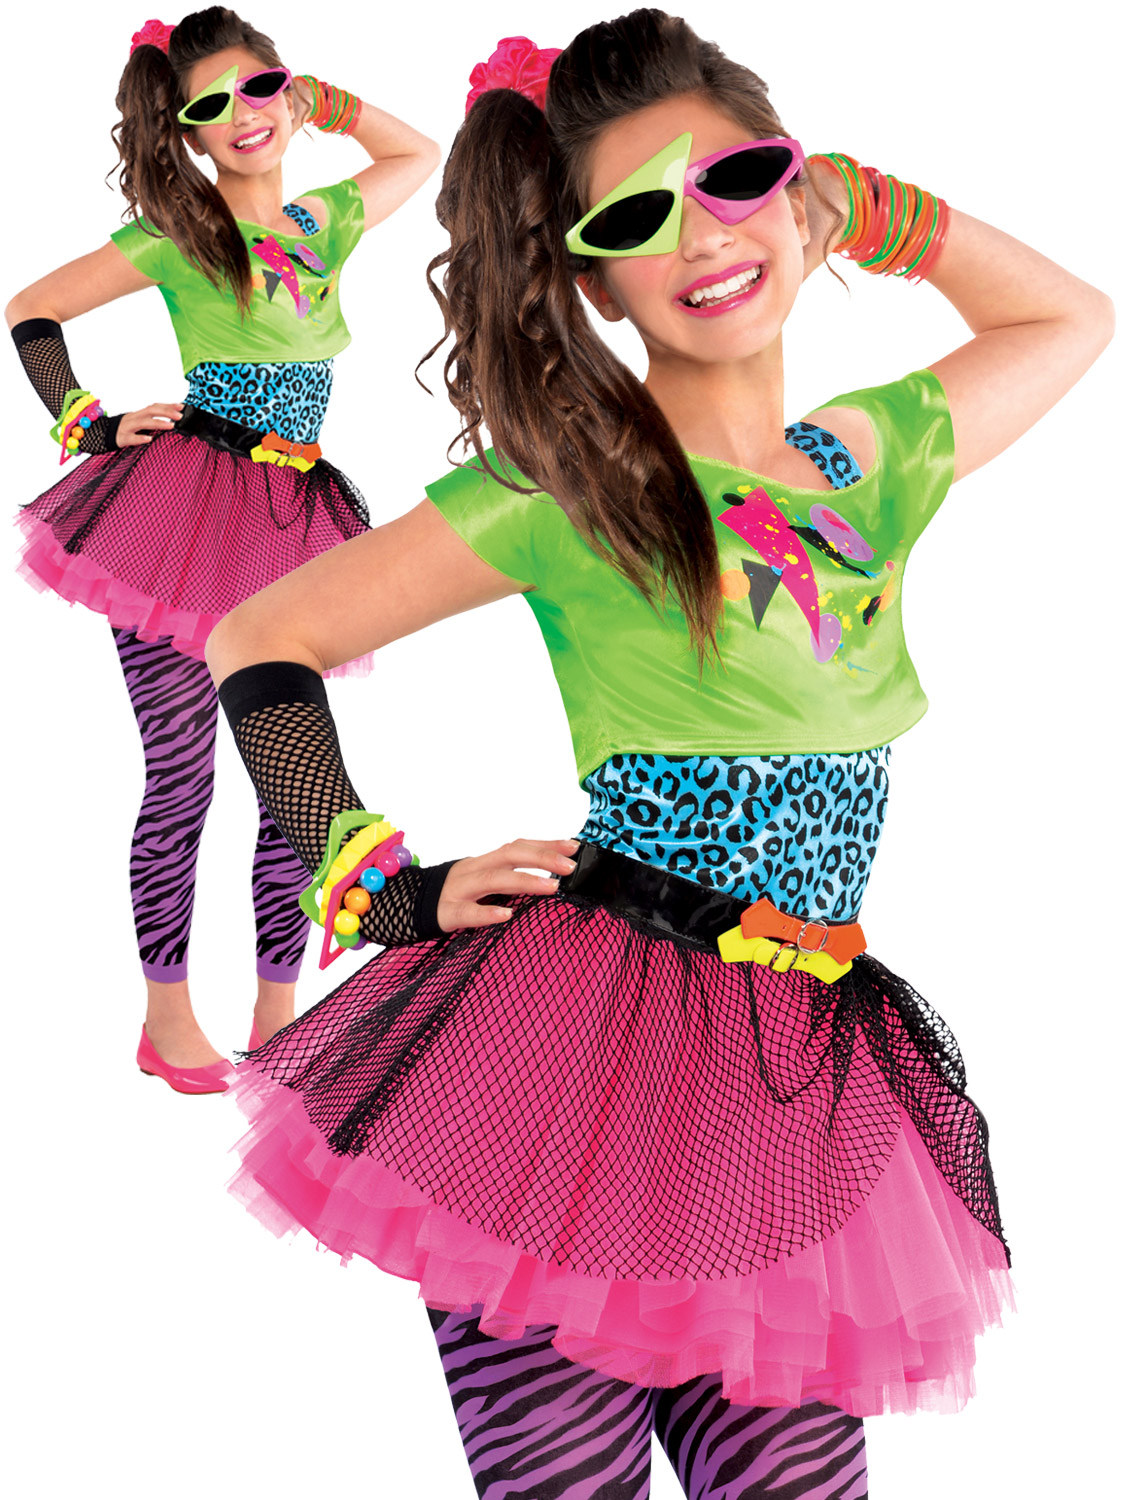 80s Vintage Clothing In The Uk Just Got Easier: Childs Girl 80s Costume Totally Awesome Teen Neon Disco